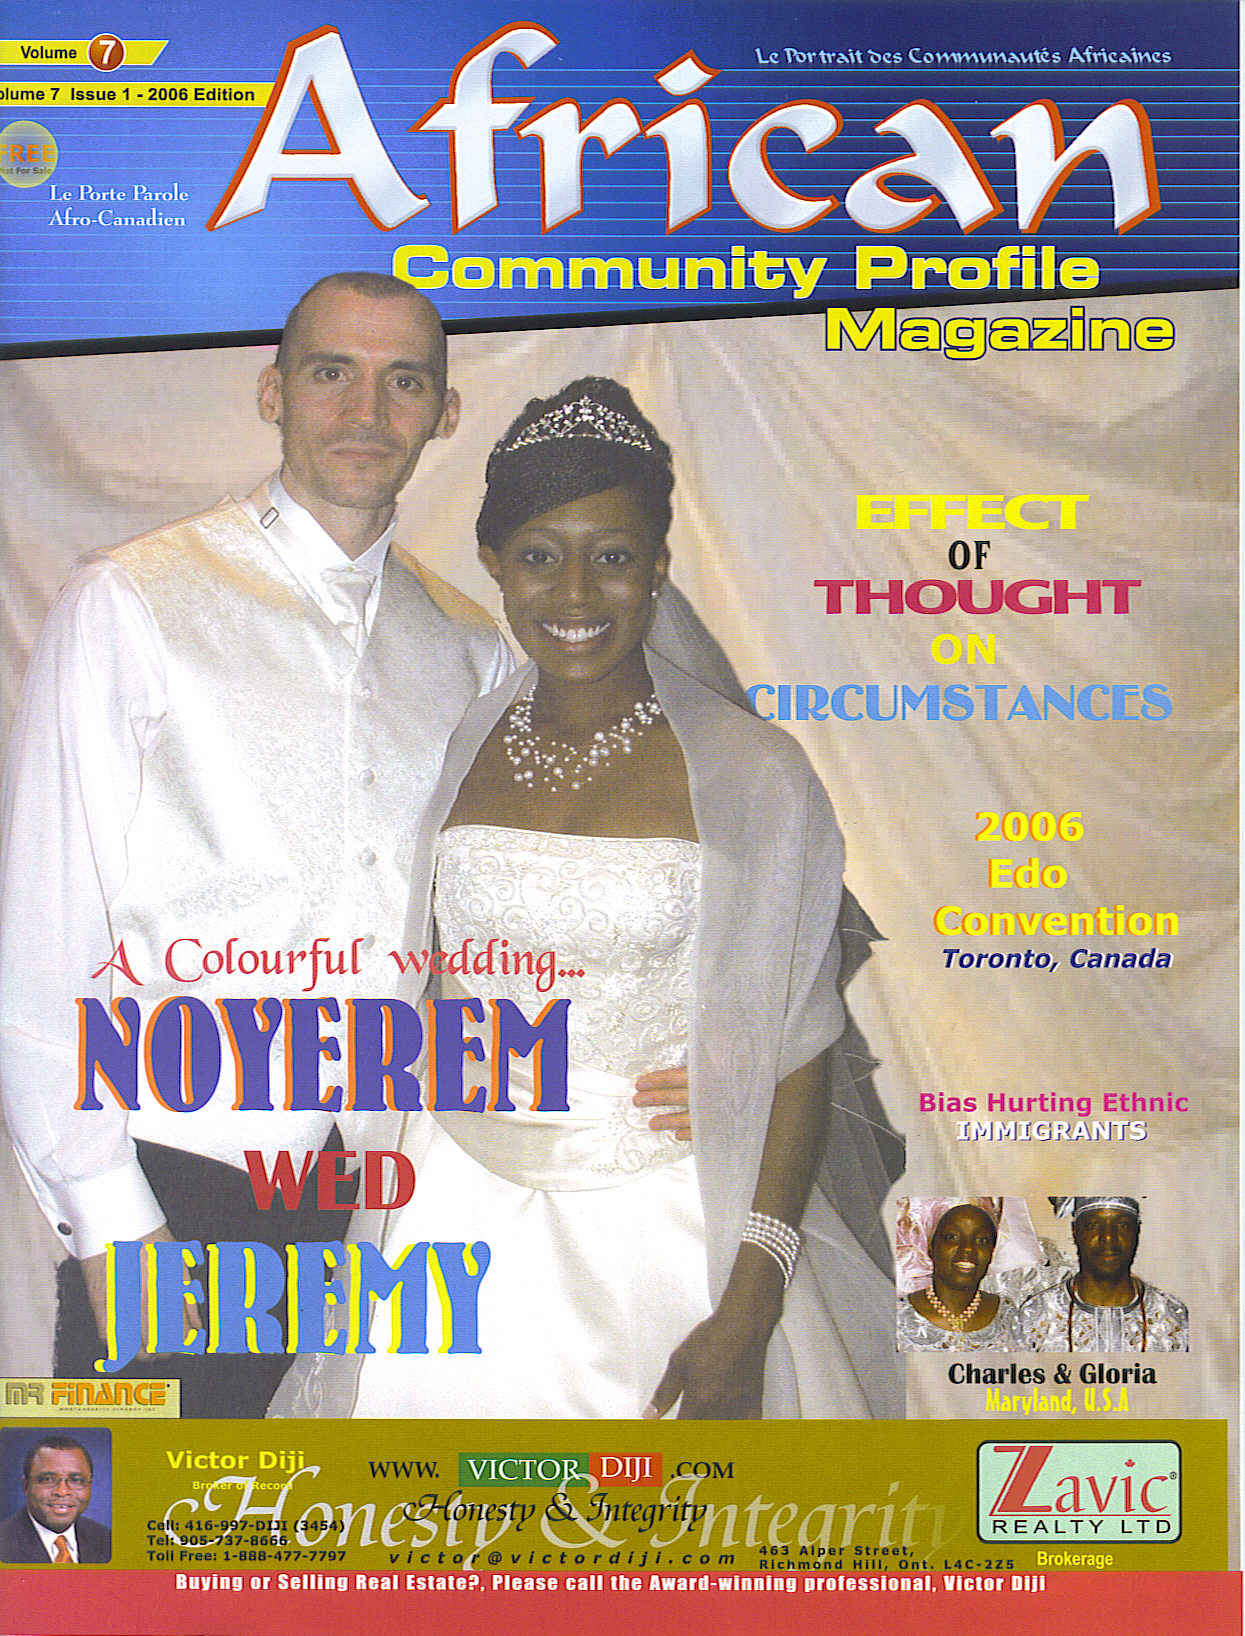 vol-7-issue-1-2006.jpg